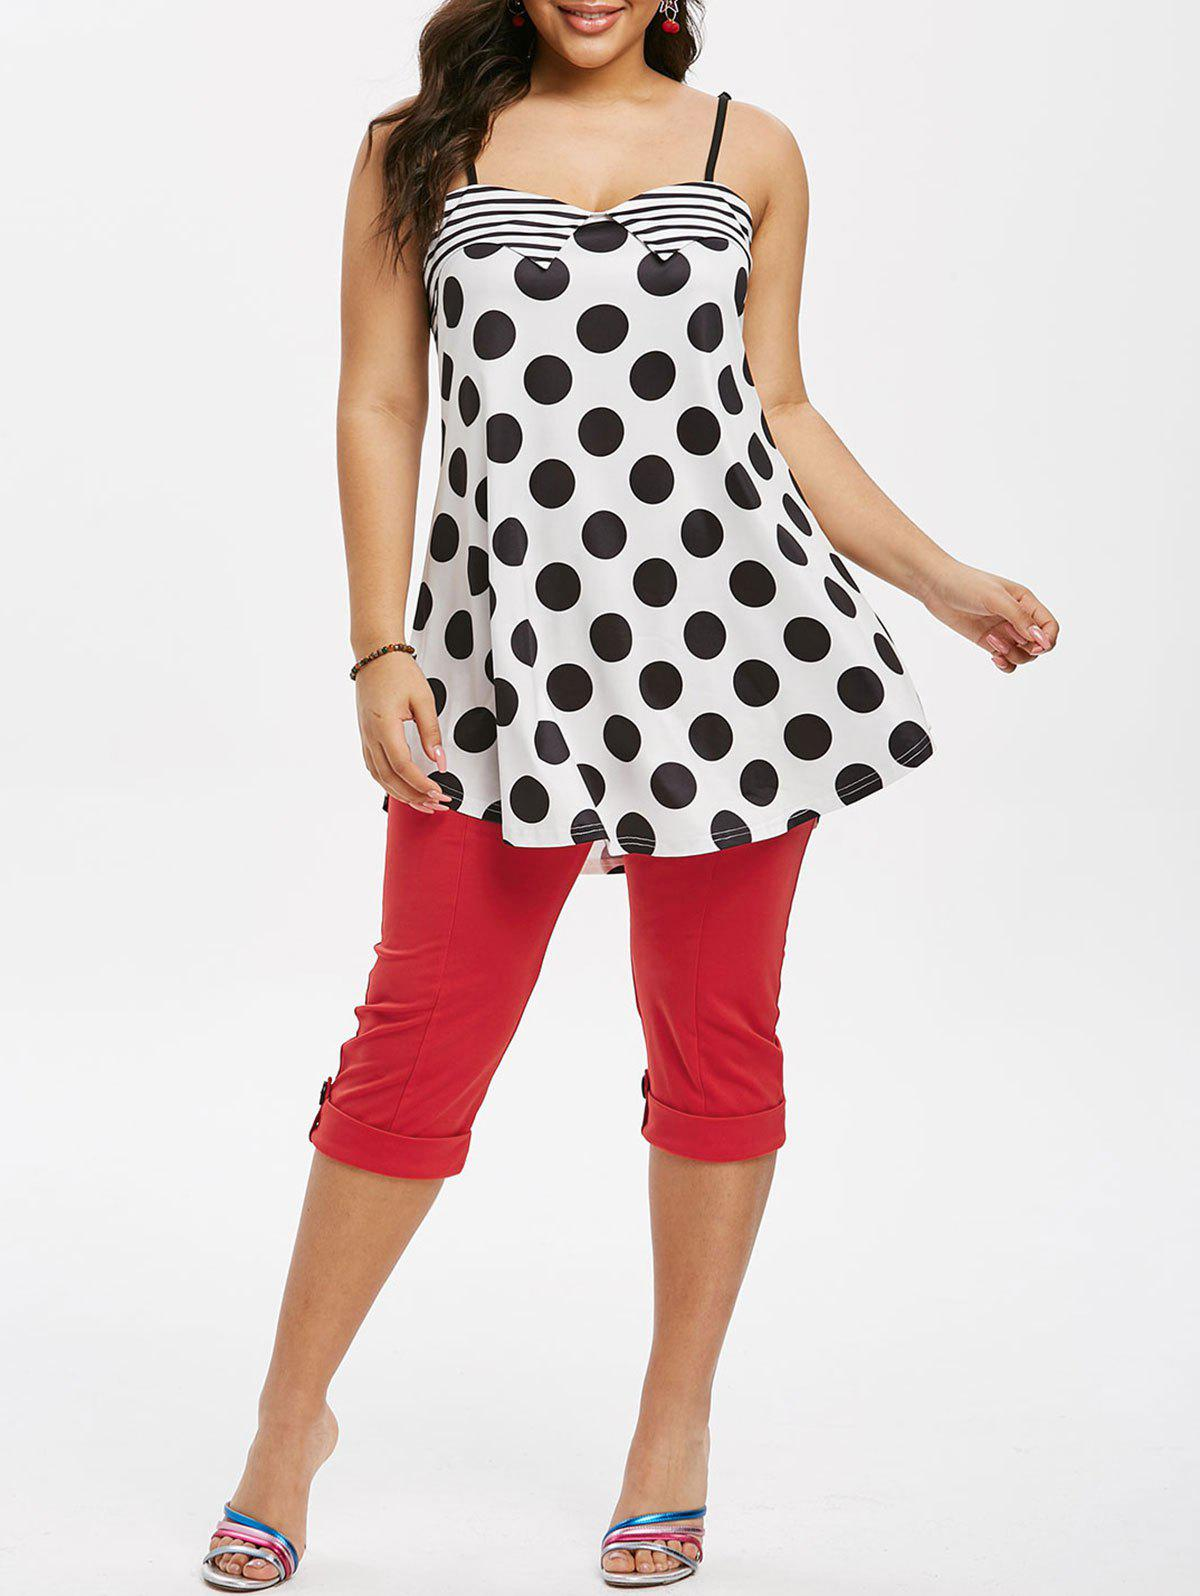 Plus Size Polka Dot Cami Top and Cropped Sailor Pants Set - multicolor L